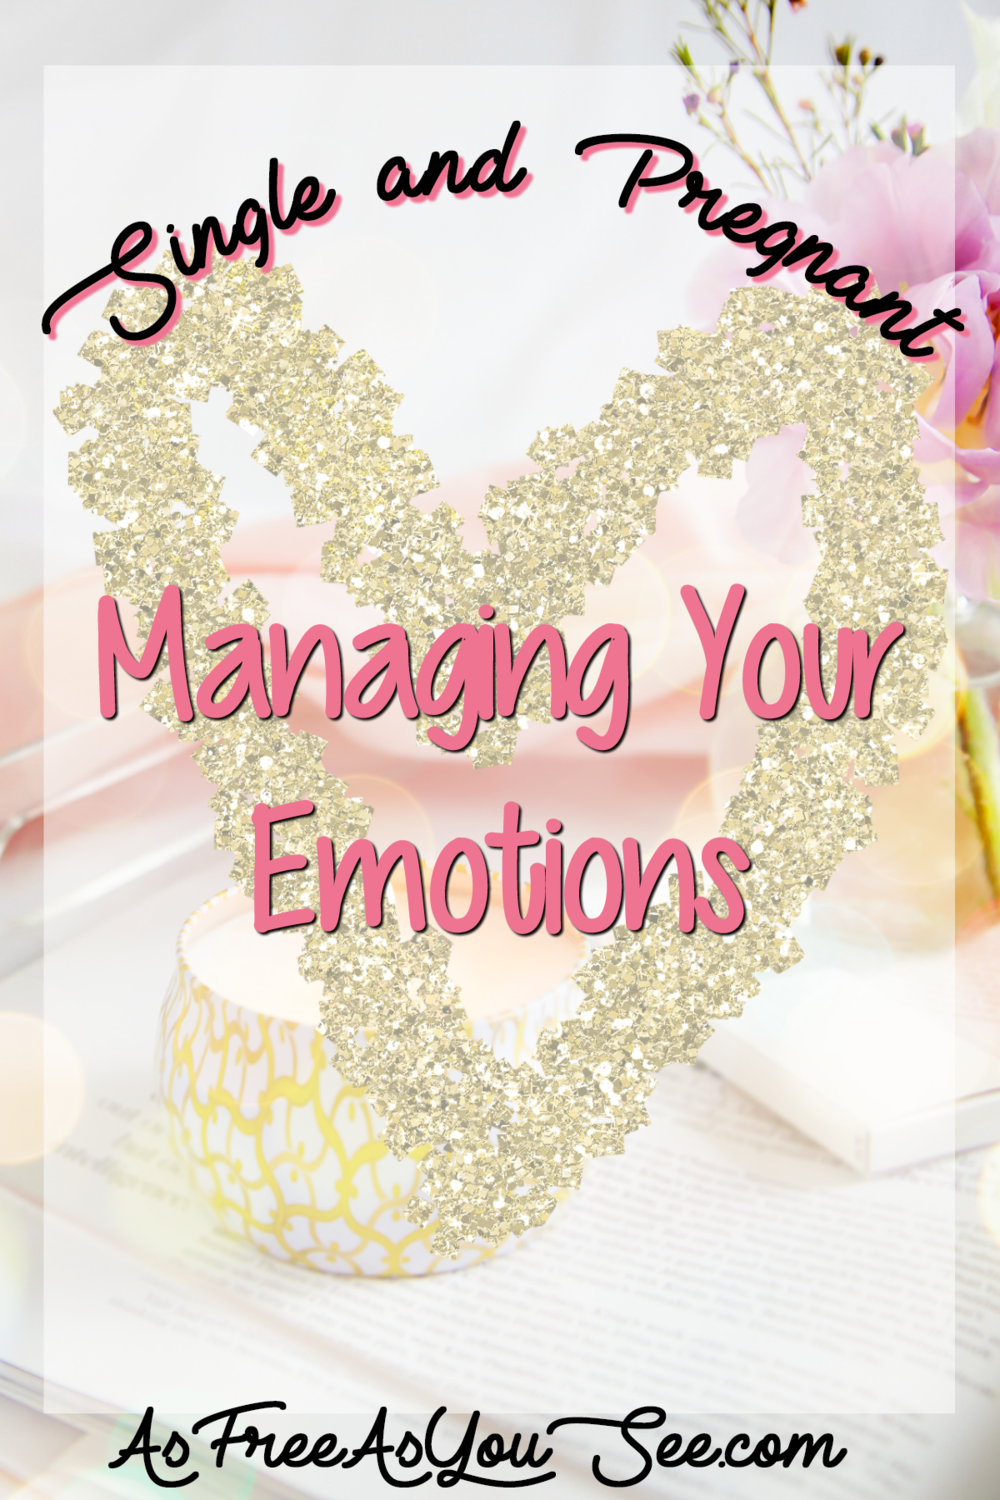 Single and Pregnant: Managing Your Emotions